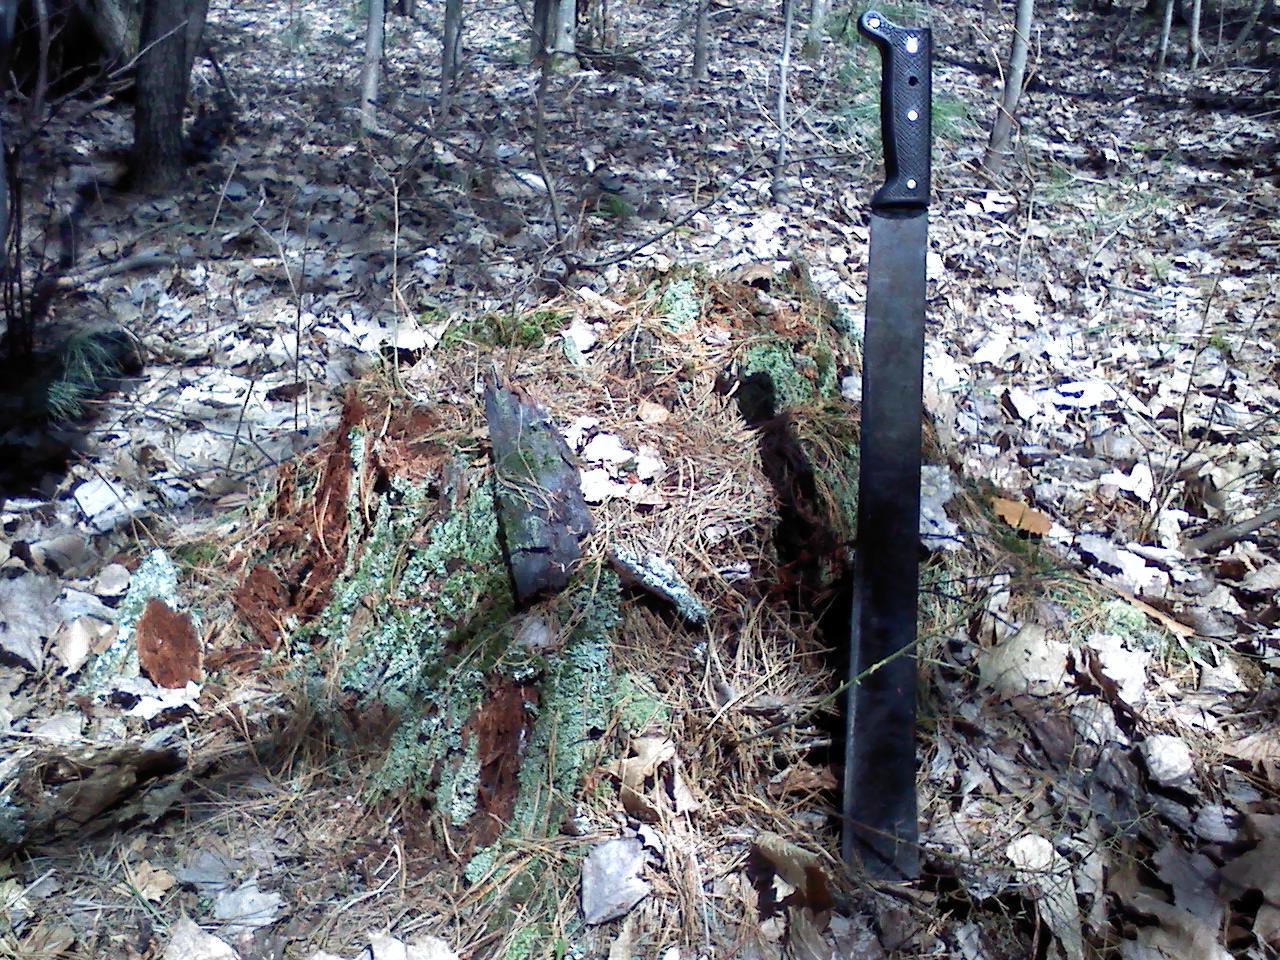 Remains of what is believed to be a GLO White Pine line tree, now stump with evidence of charring, possibly from the Great Michigan Fire of 1871, Section 6, Sheridan Township, Mason County, recovered October 2013